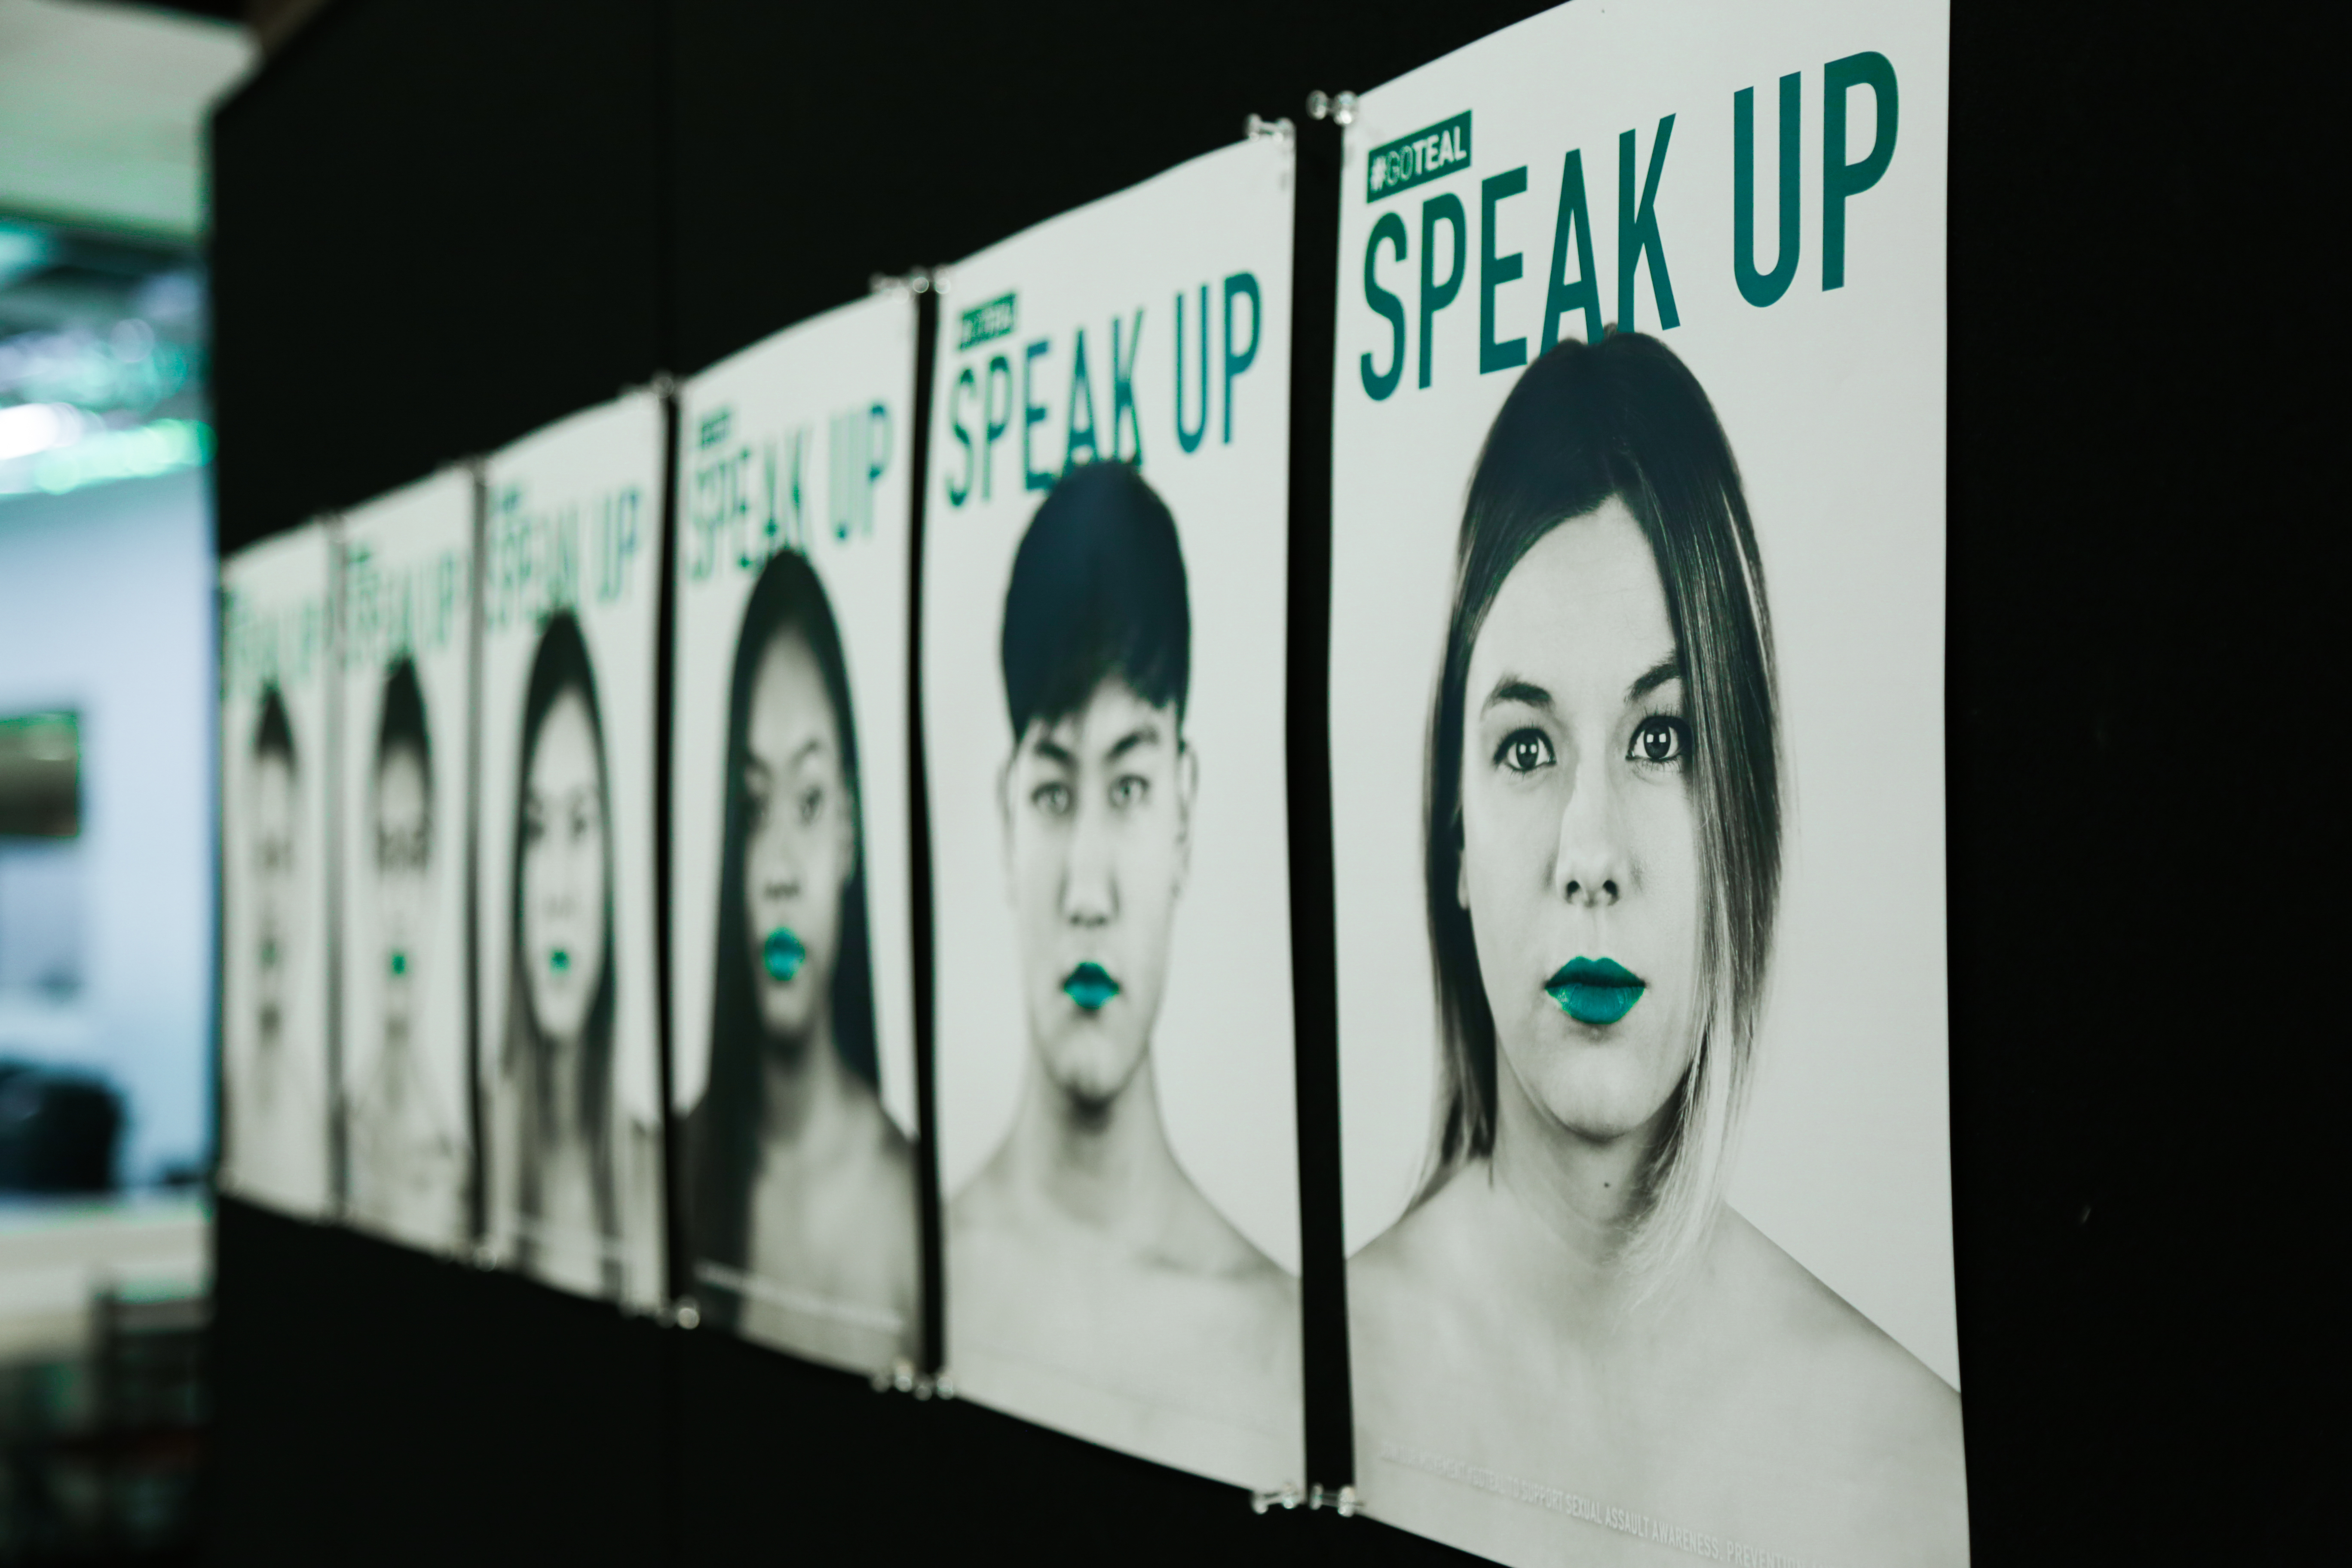 campaign images of speak up, a campaign produced by students